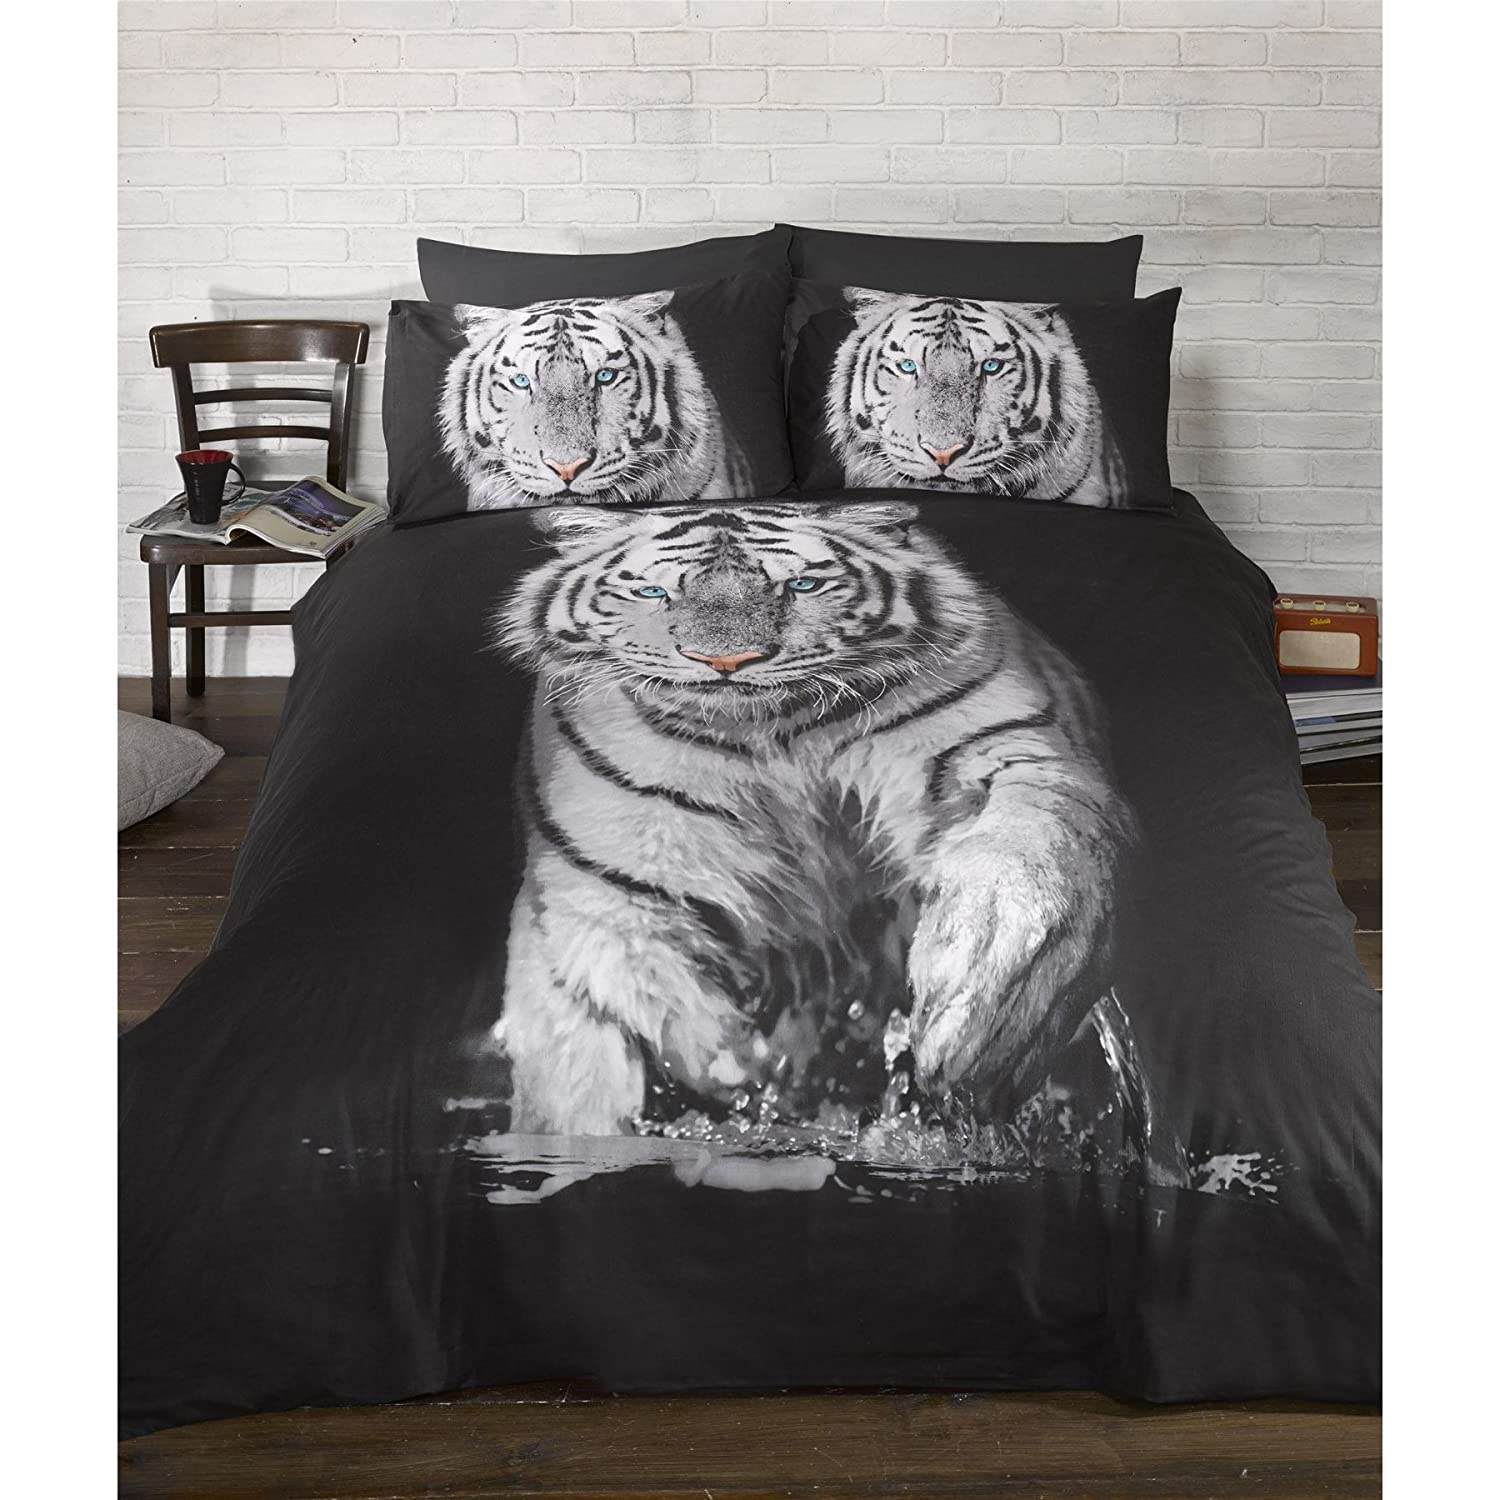 Tiger and Jungle Theme Bedding - Ease Bedding with Style